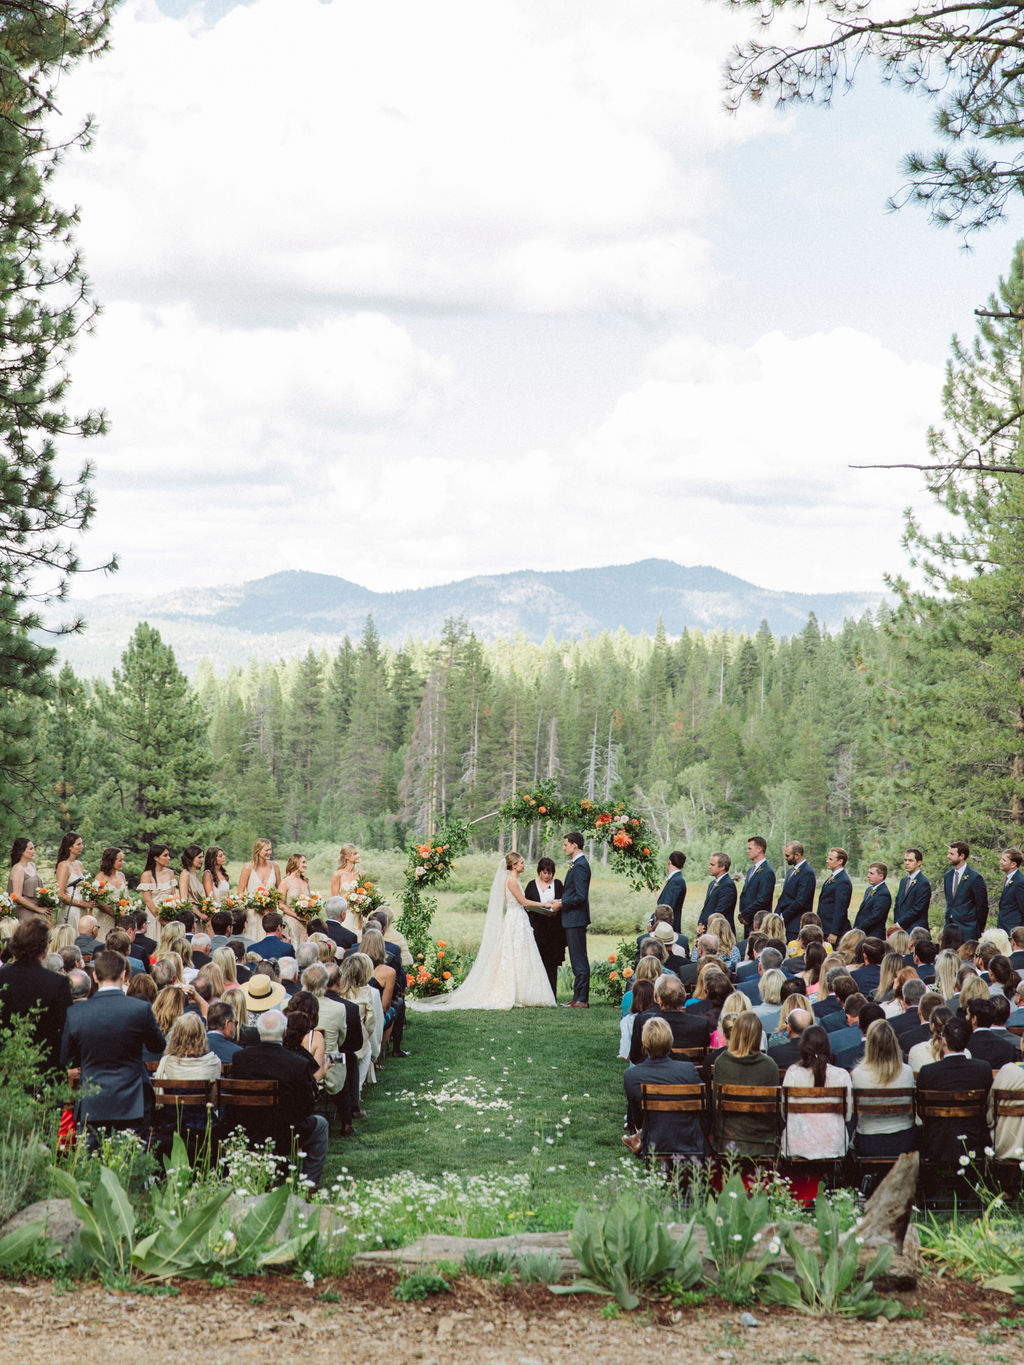 wedding ceremony with mountains and forest backdrop